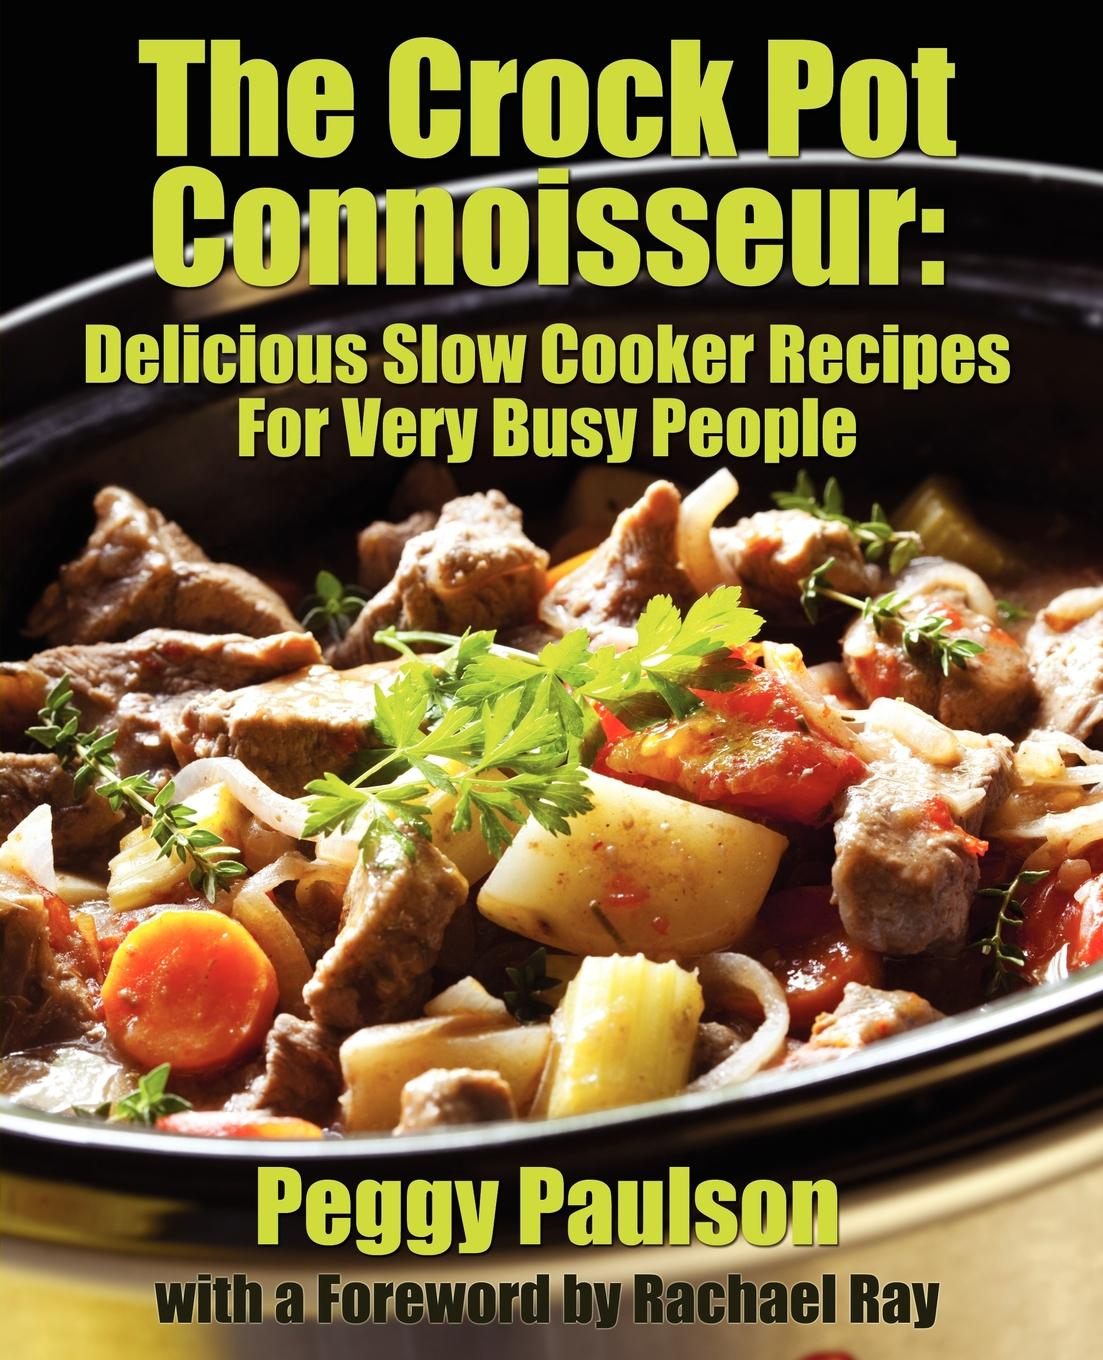 Peggy Paulson The Crock Pot Connoisseur. Delicious Slow Cooker Recipes For (Very) Busy People cocktails fancy and delicious recipes for all tastes